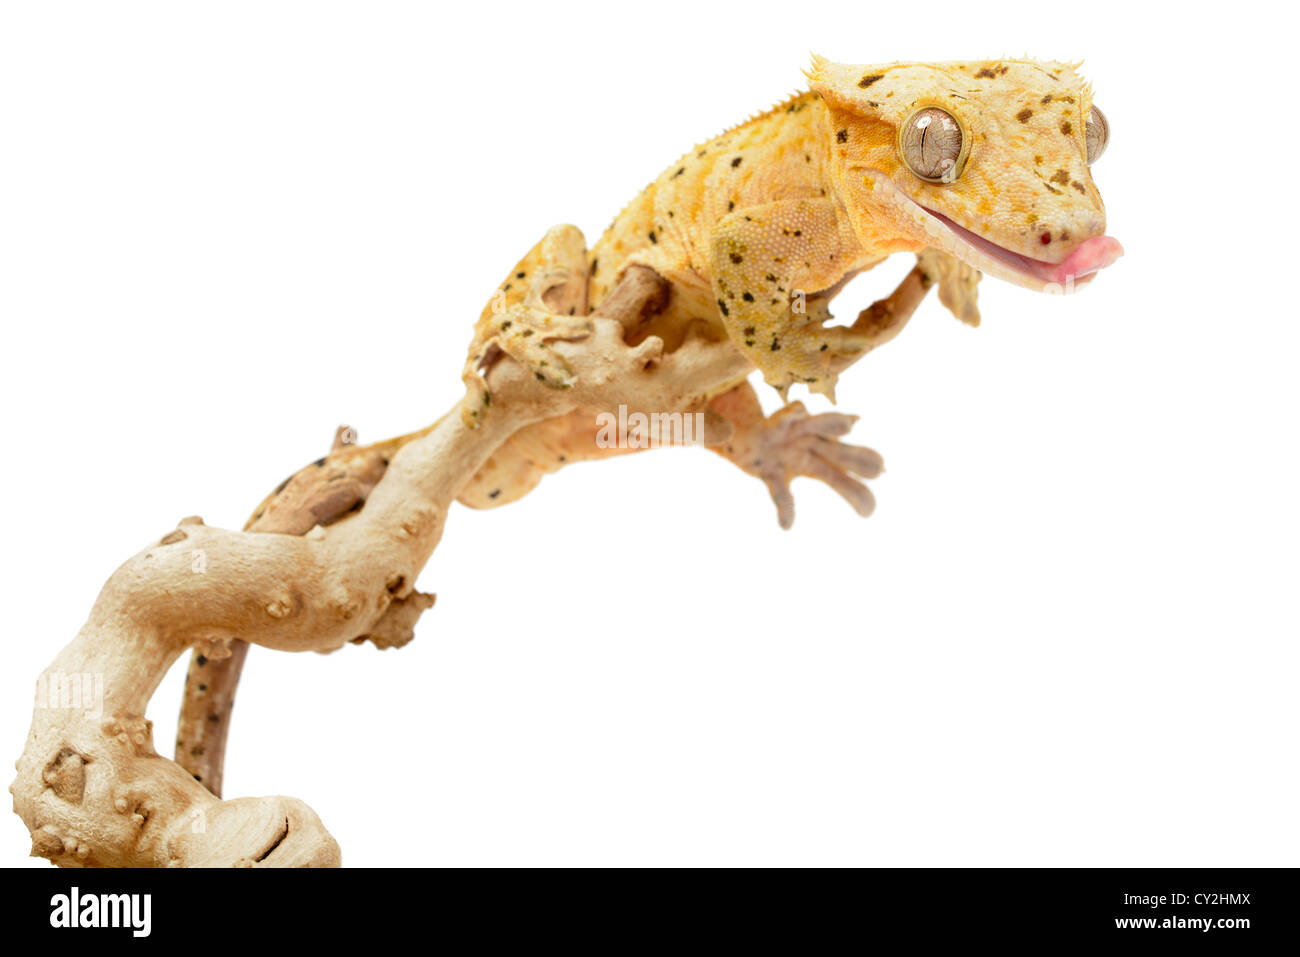 Crested gecko on white background. - Stock Image